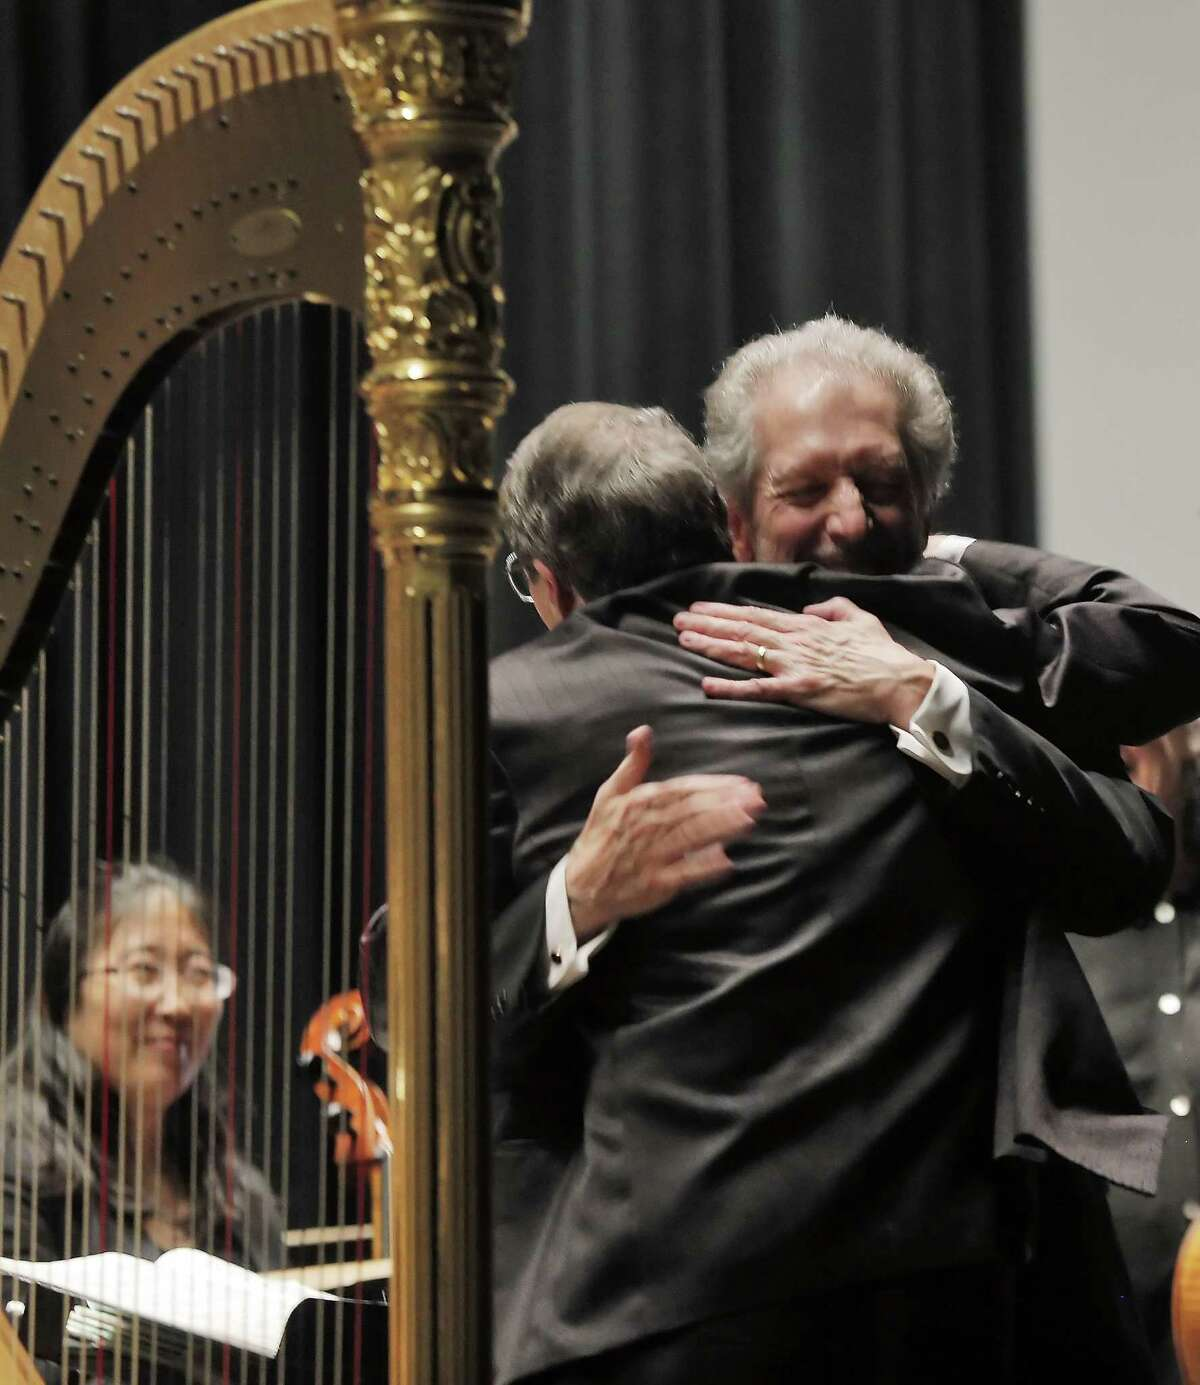 Conductor David Ramadanoff is hugged by harpist Dan Levitan, left, during the final performance of the 2014-2015 season for the Vallejo Symphony Orchestra at Lander Hall on Mare Island.